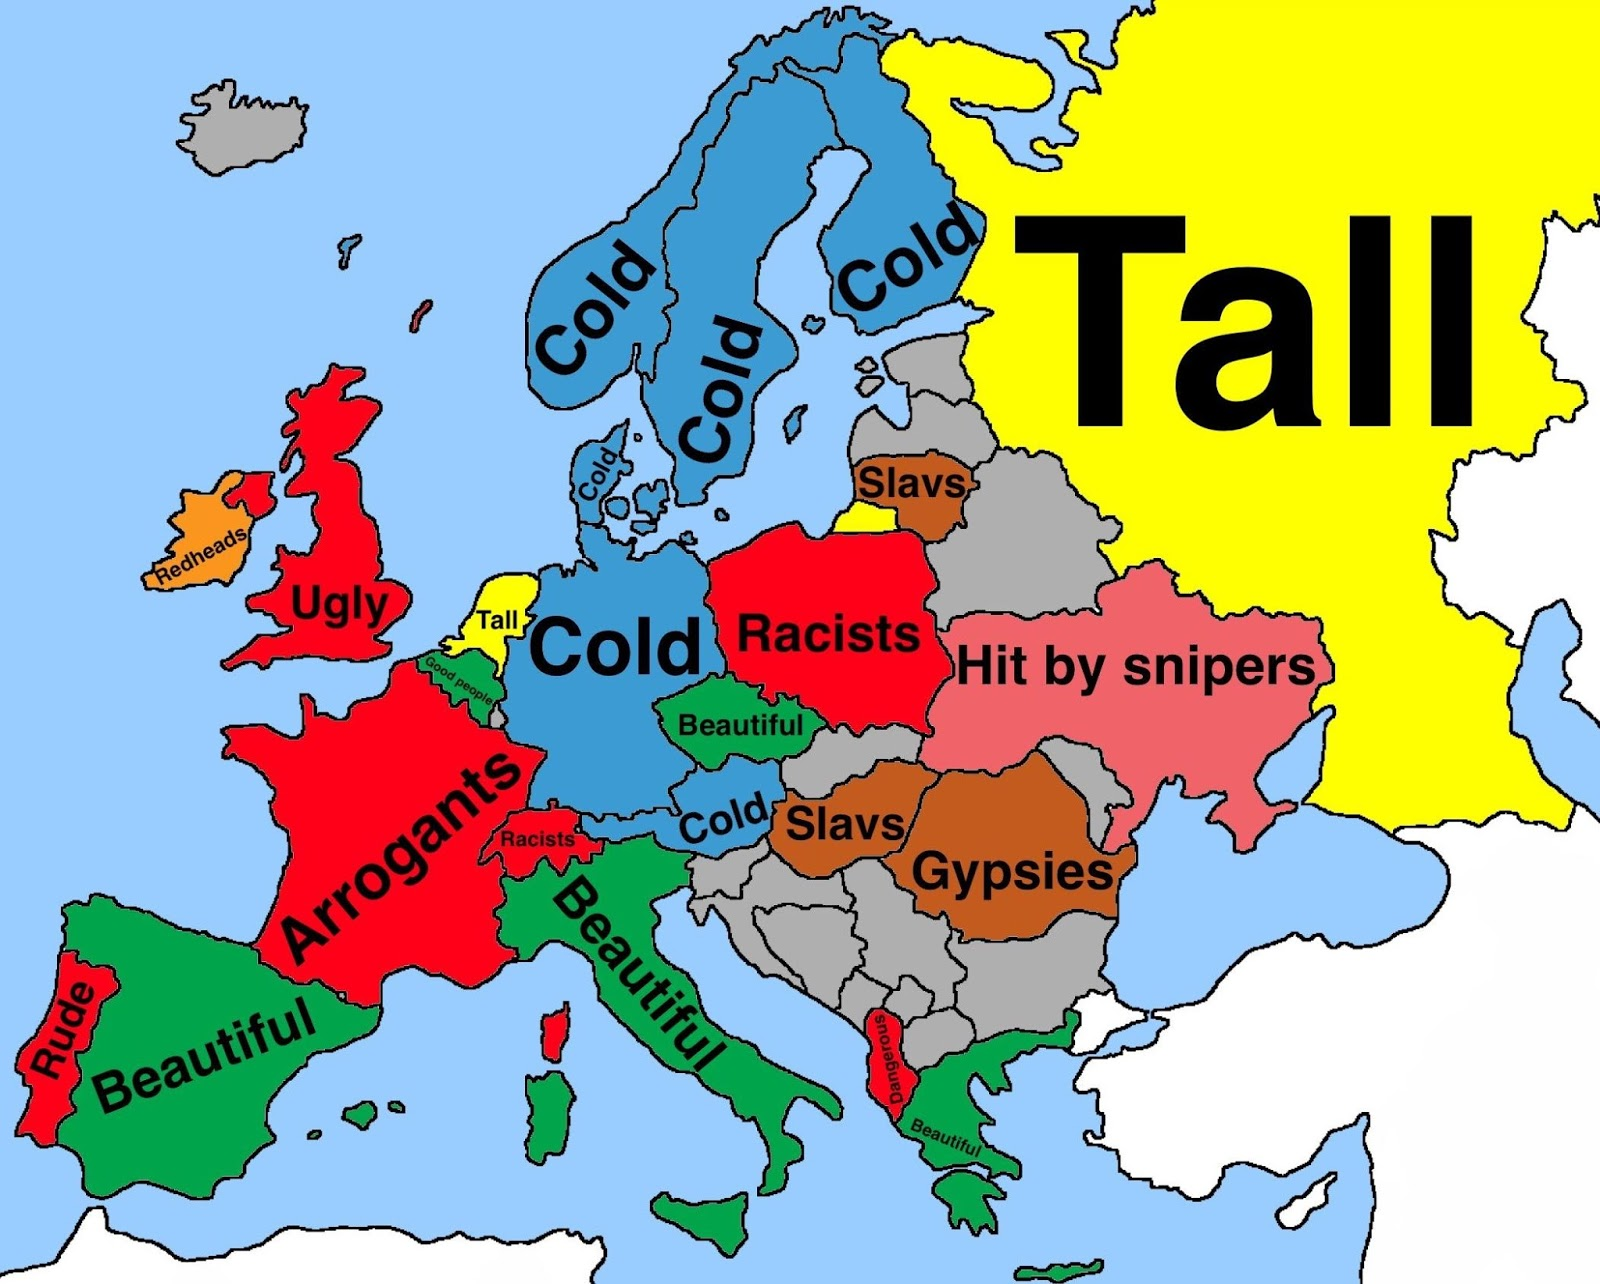 What do Brazilians think about Europeans according to Google